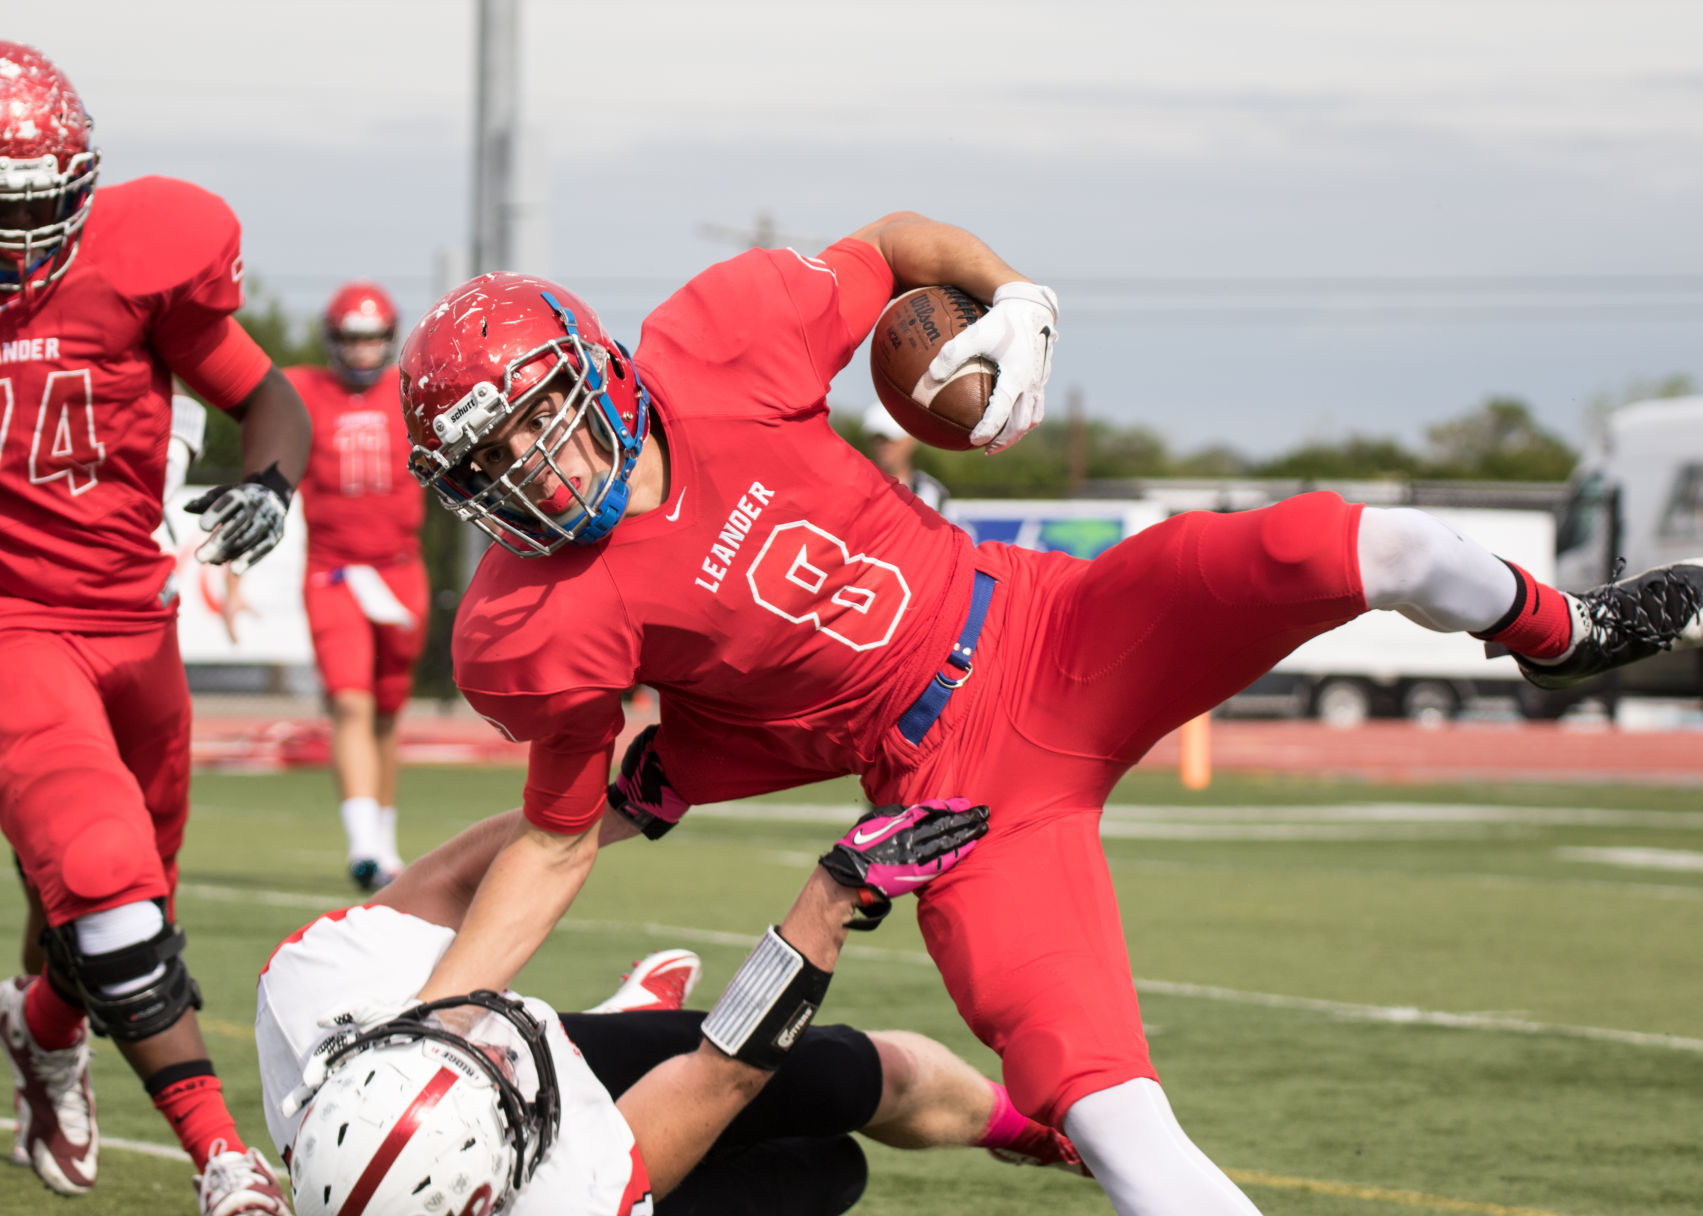 Leander plans to return to their past football stardom in the coming years